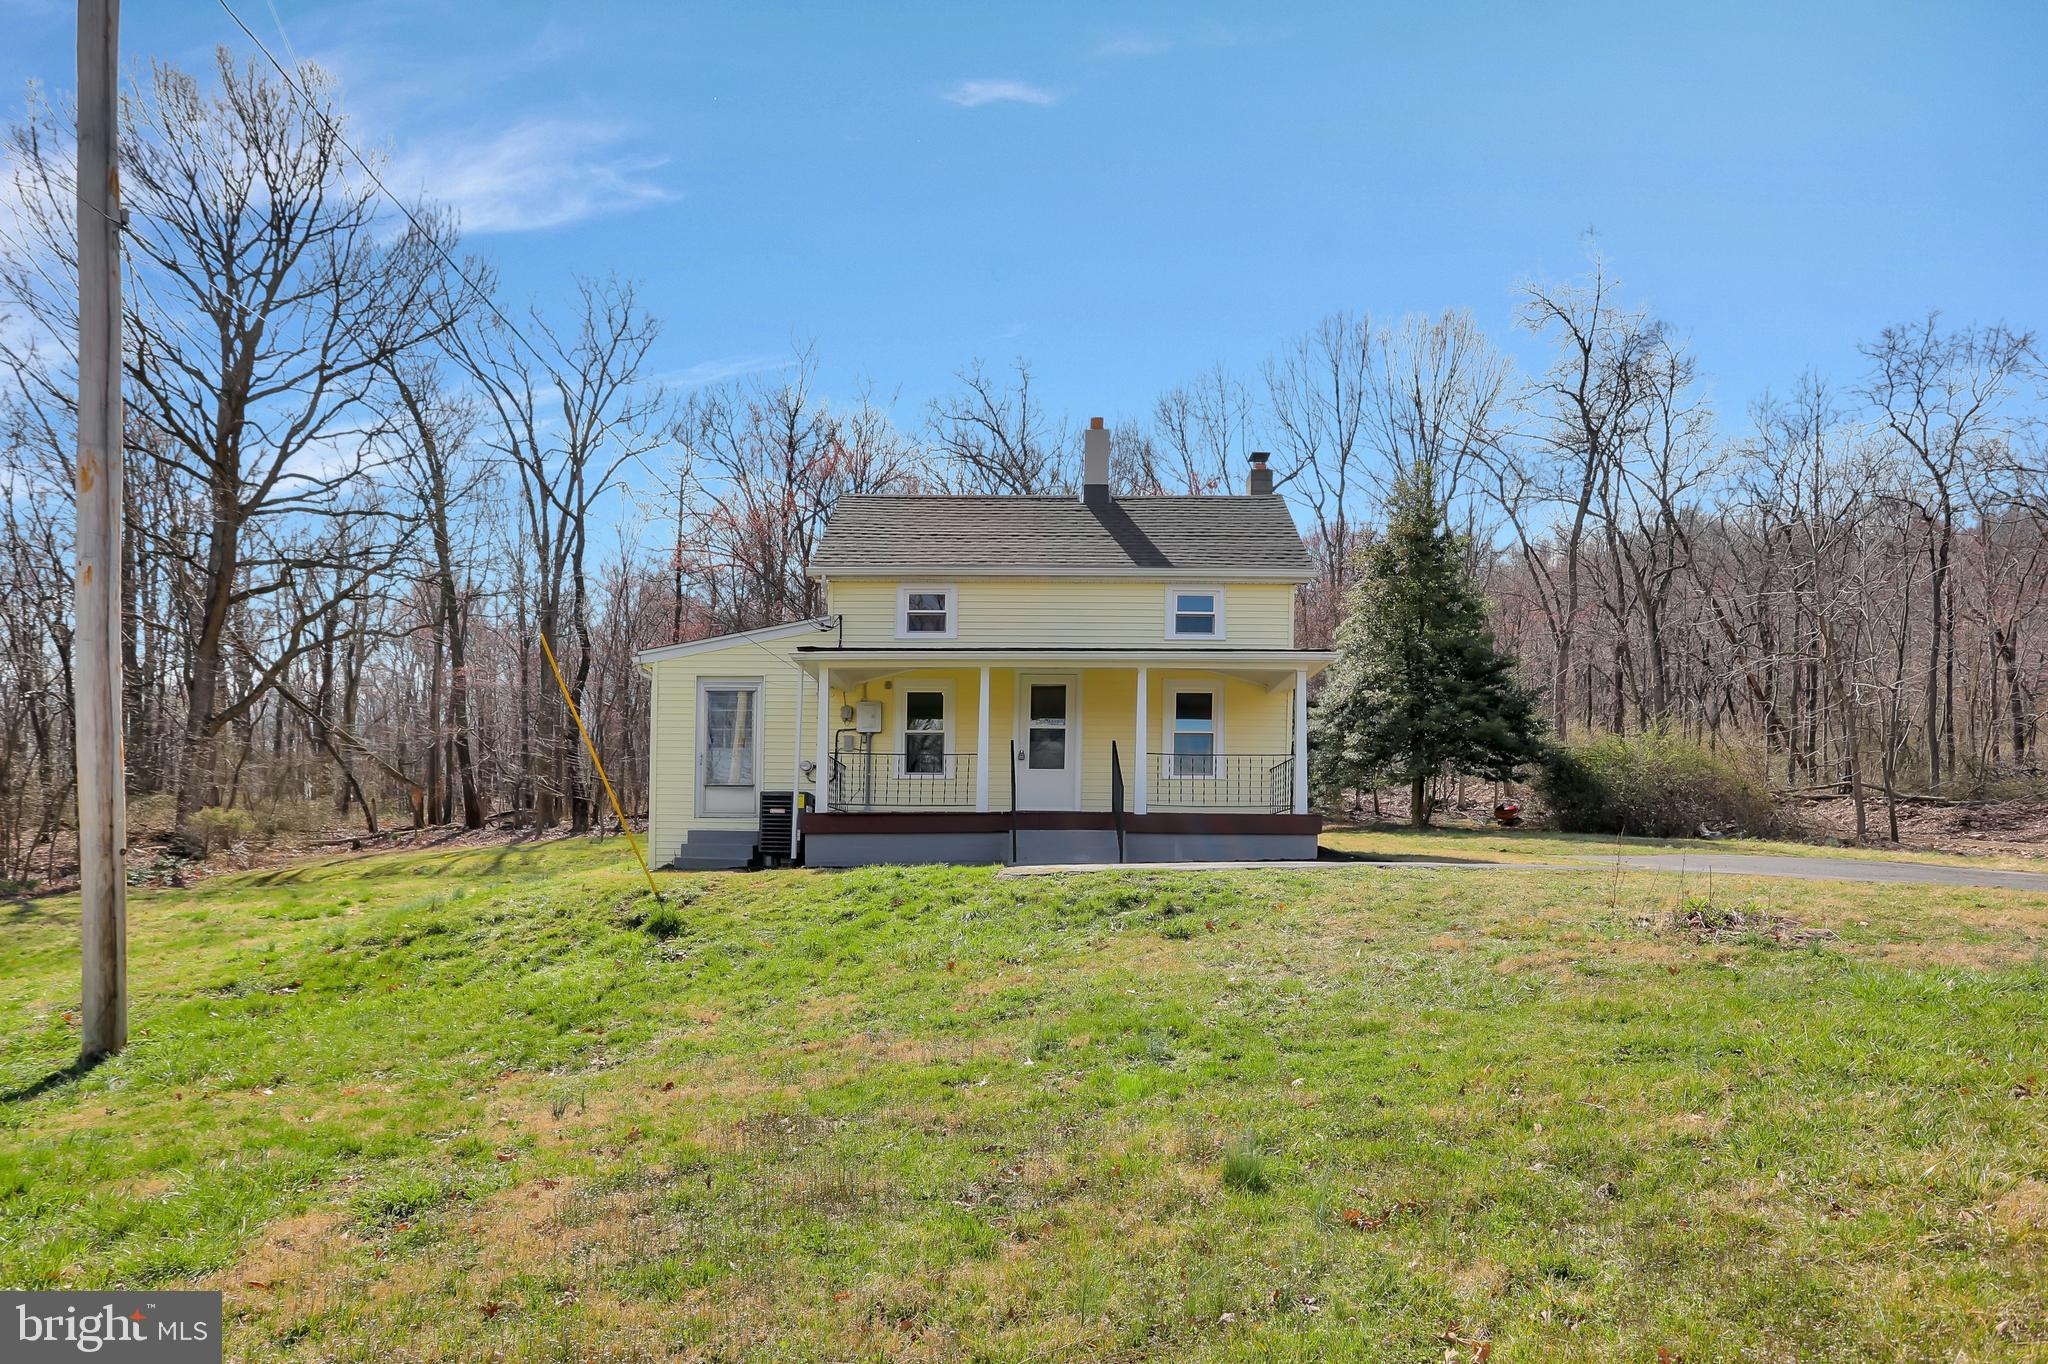 13246 Blairs Valley Road, Clear Spring, MD 21722